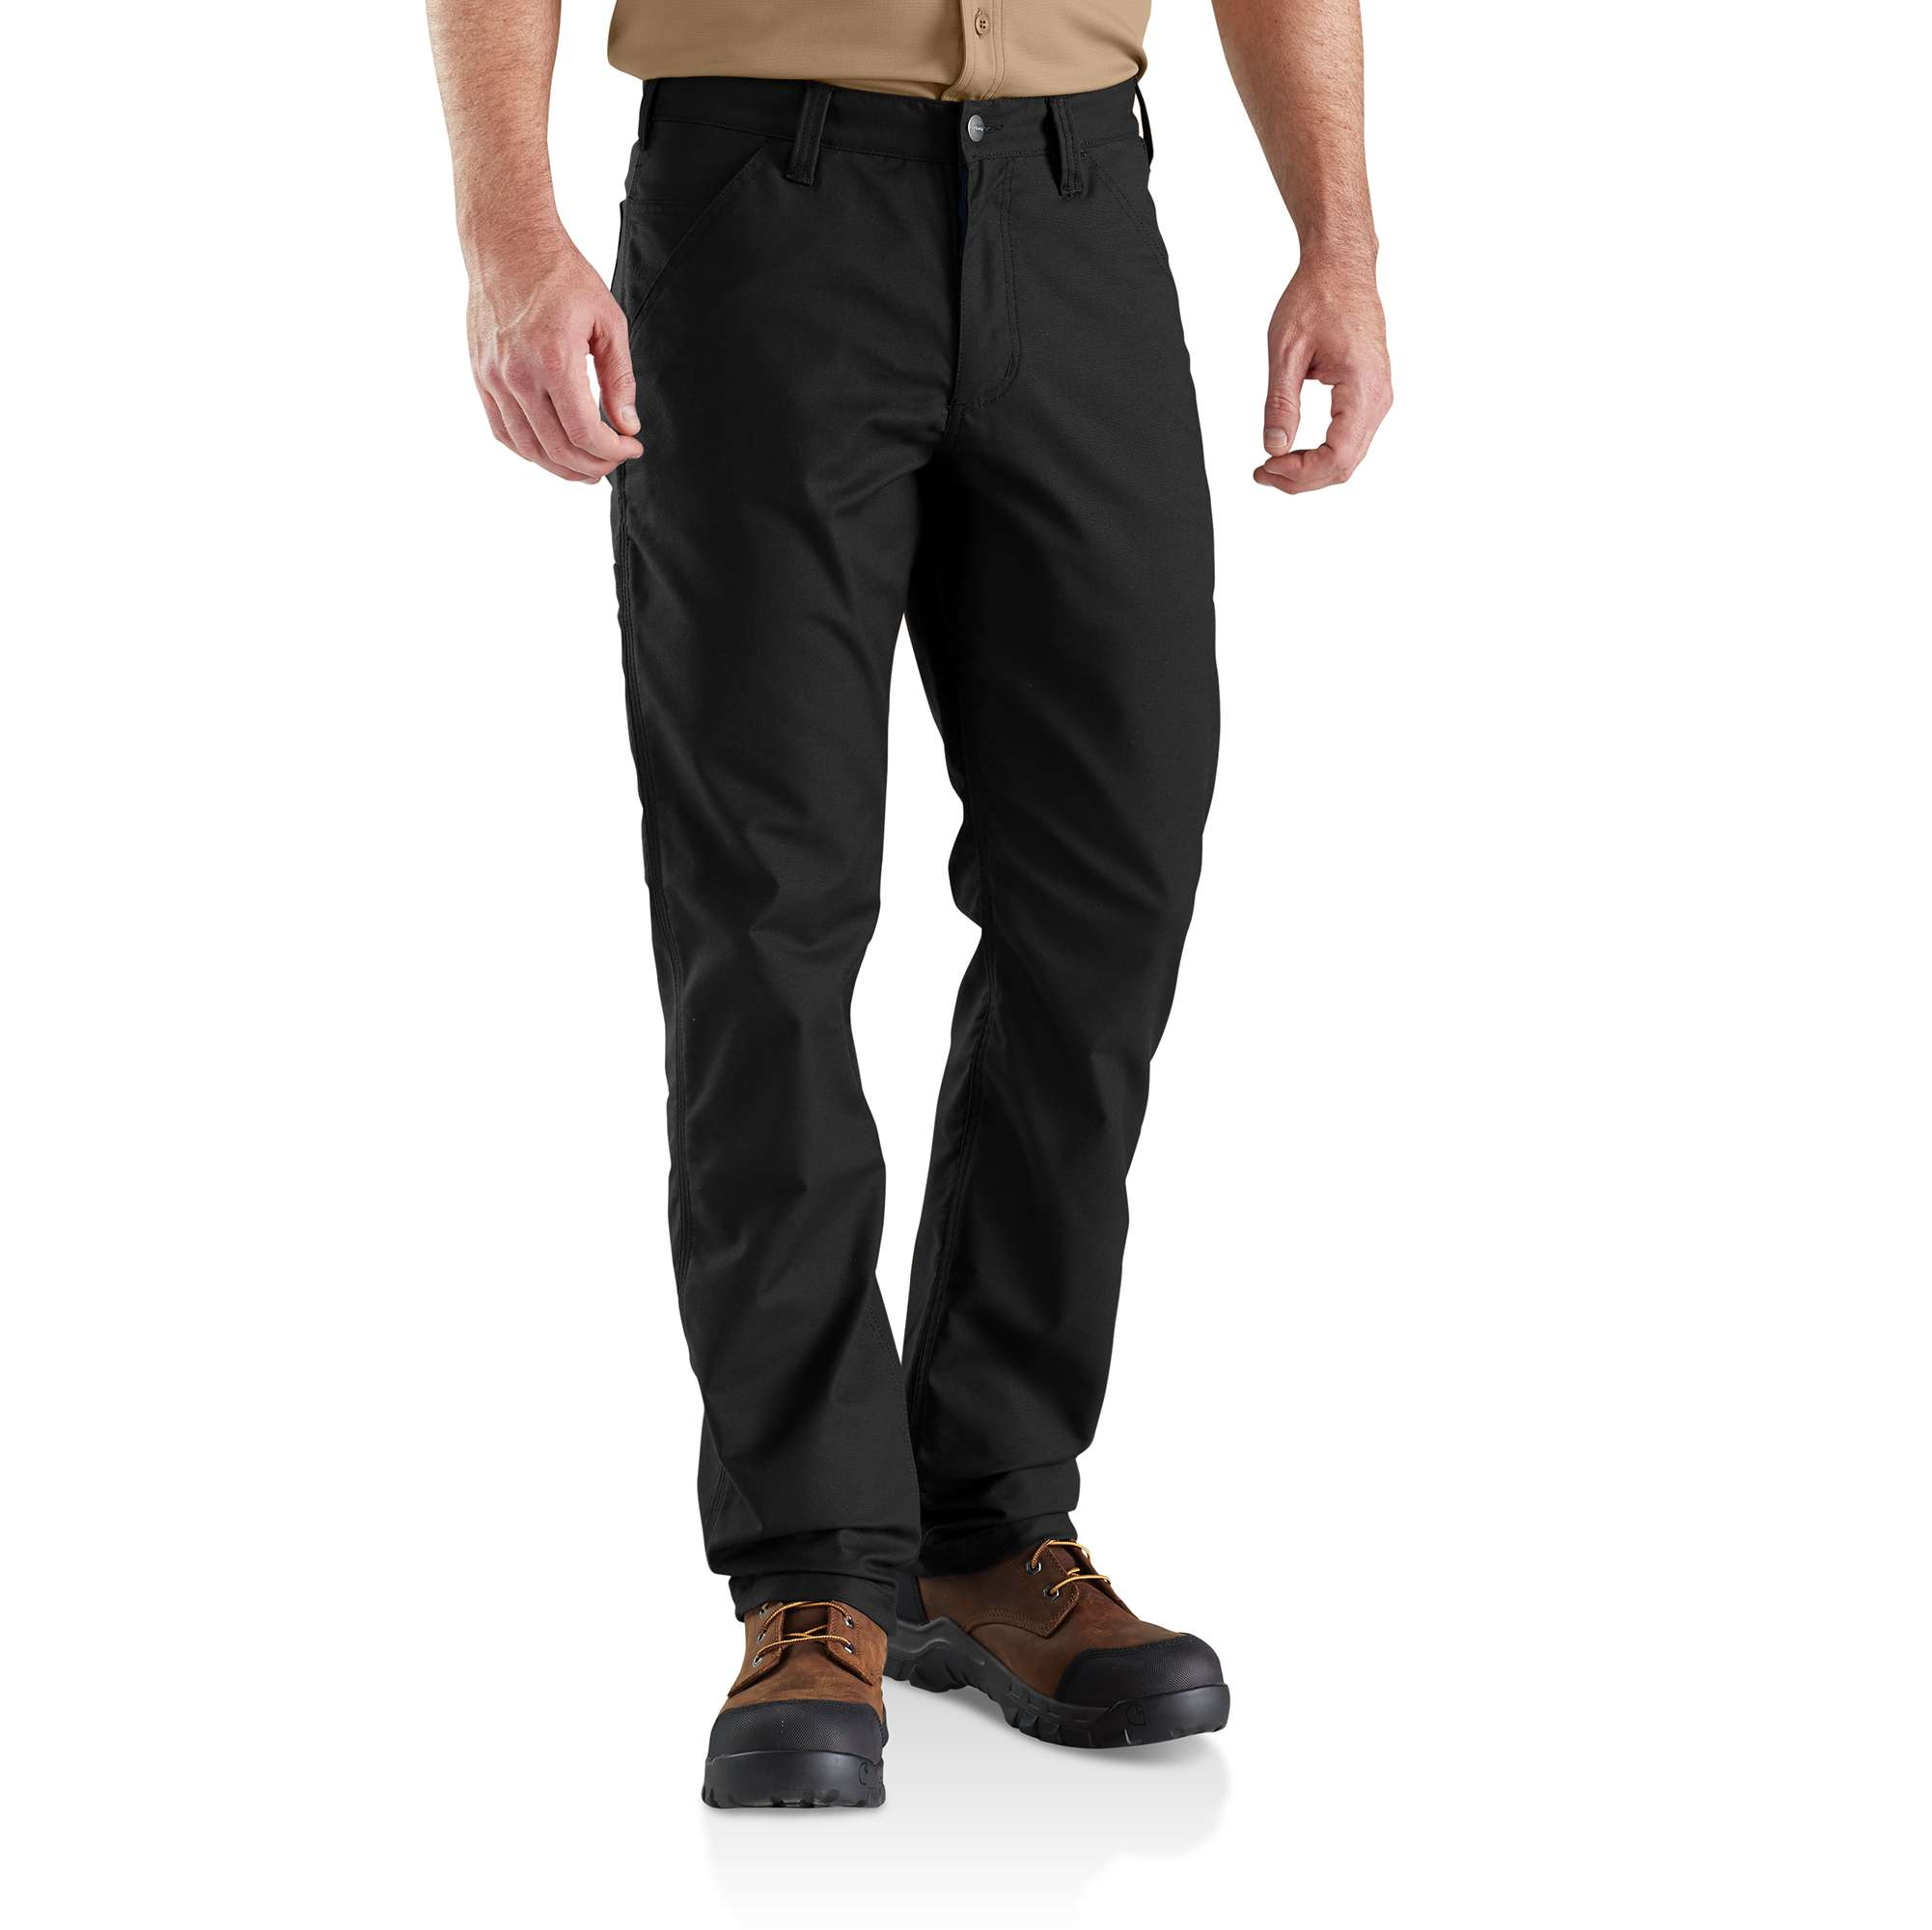 Carhartt Rugged Professional™ Series Men's Relaxed Fit Pant